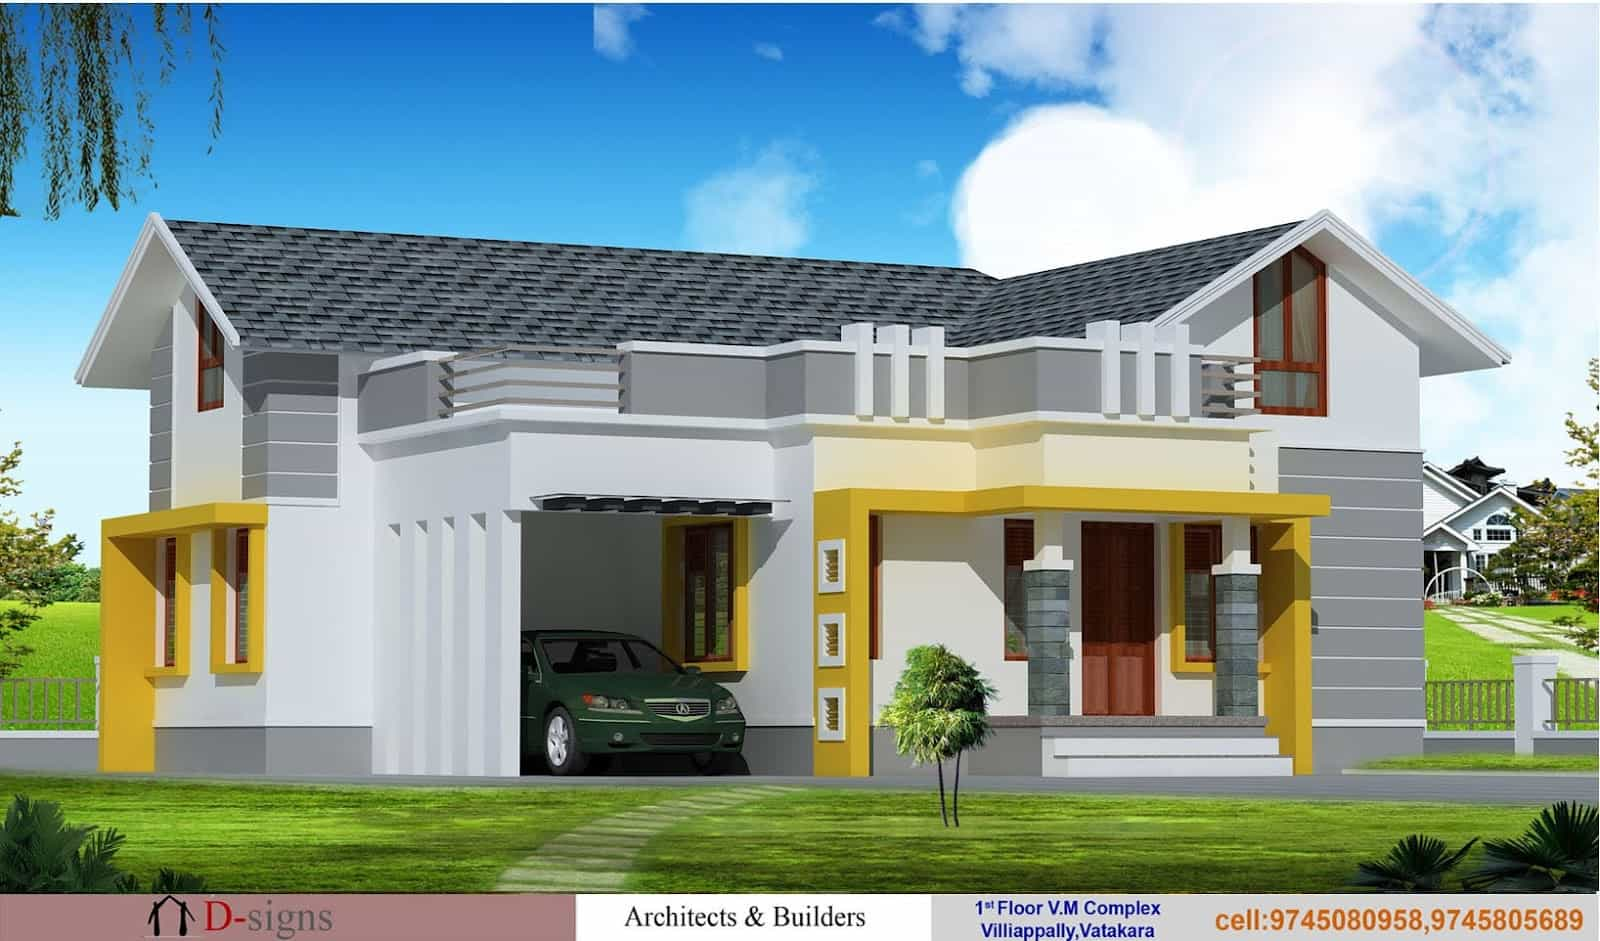 Low Cost House in Kerala with Plan & Photos – 991 sq ft